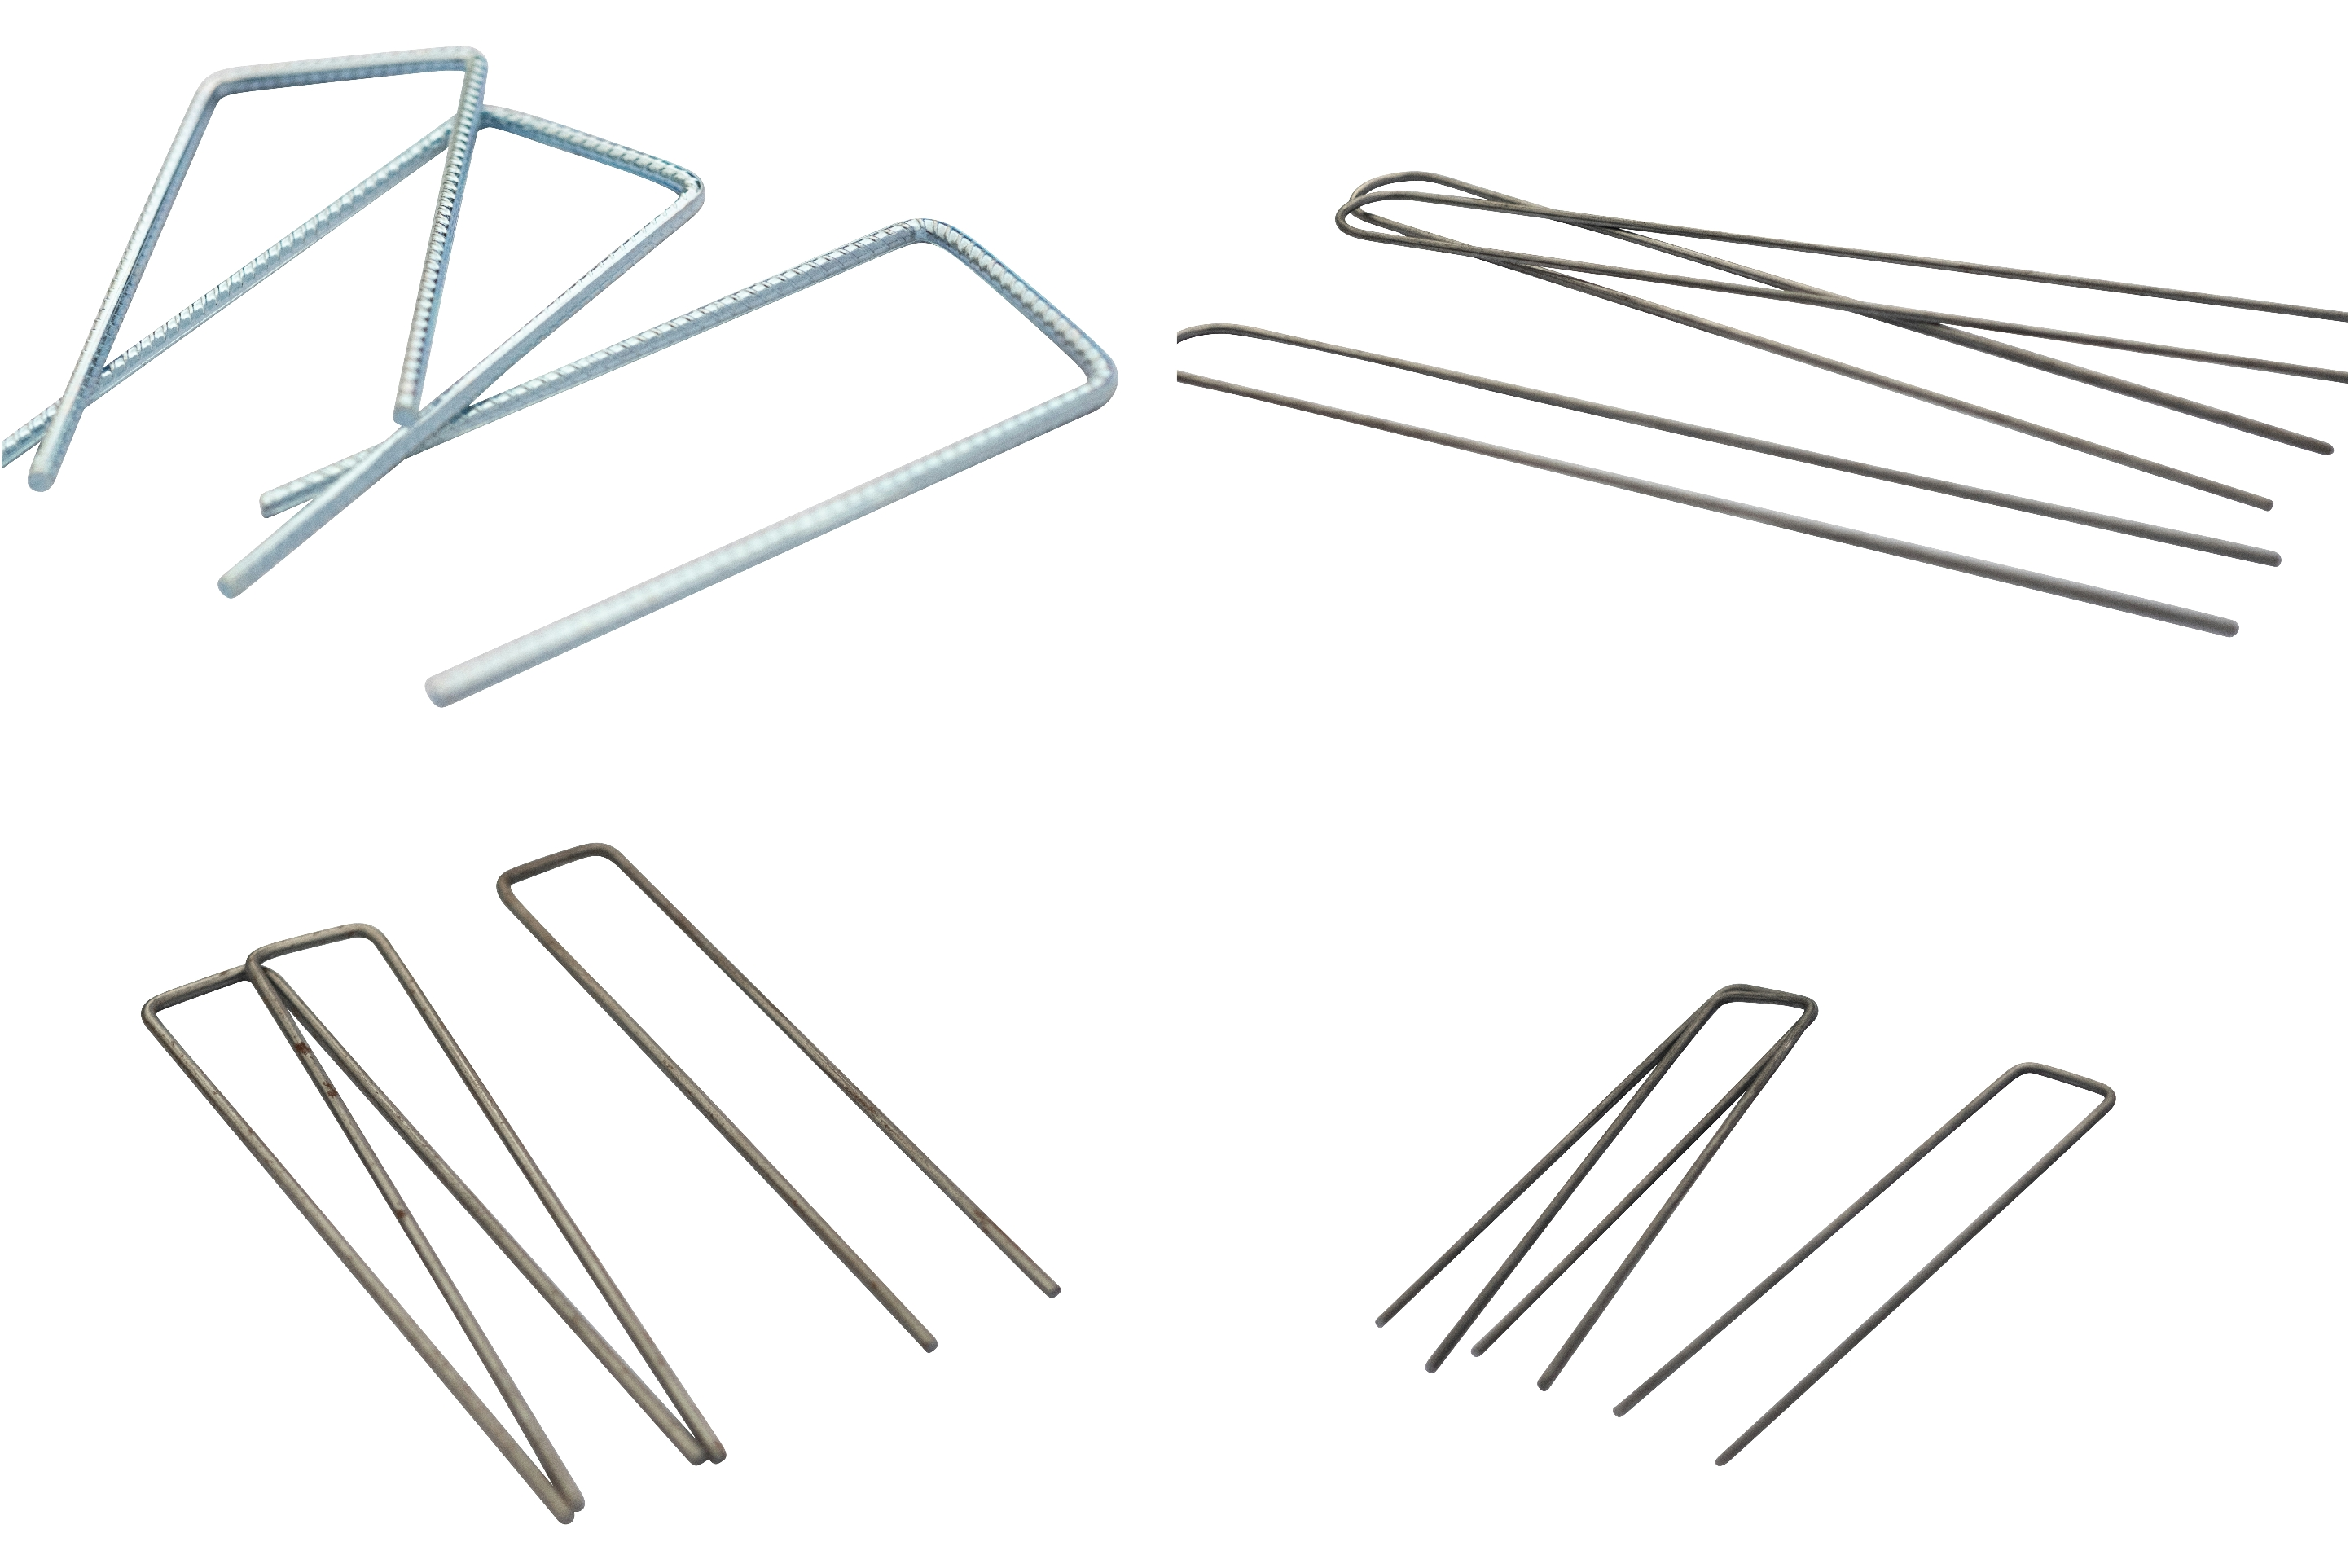 Playtive Küche Ersatzteile Metal Fixing Pins - Hy-tex (uk) Ltd.